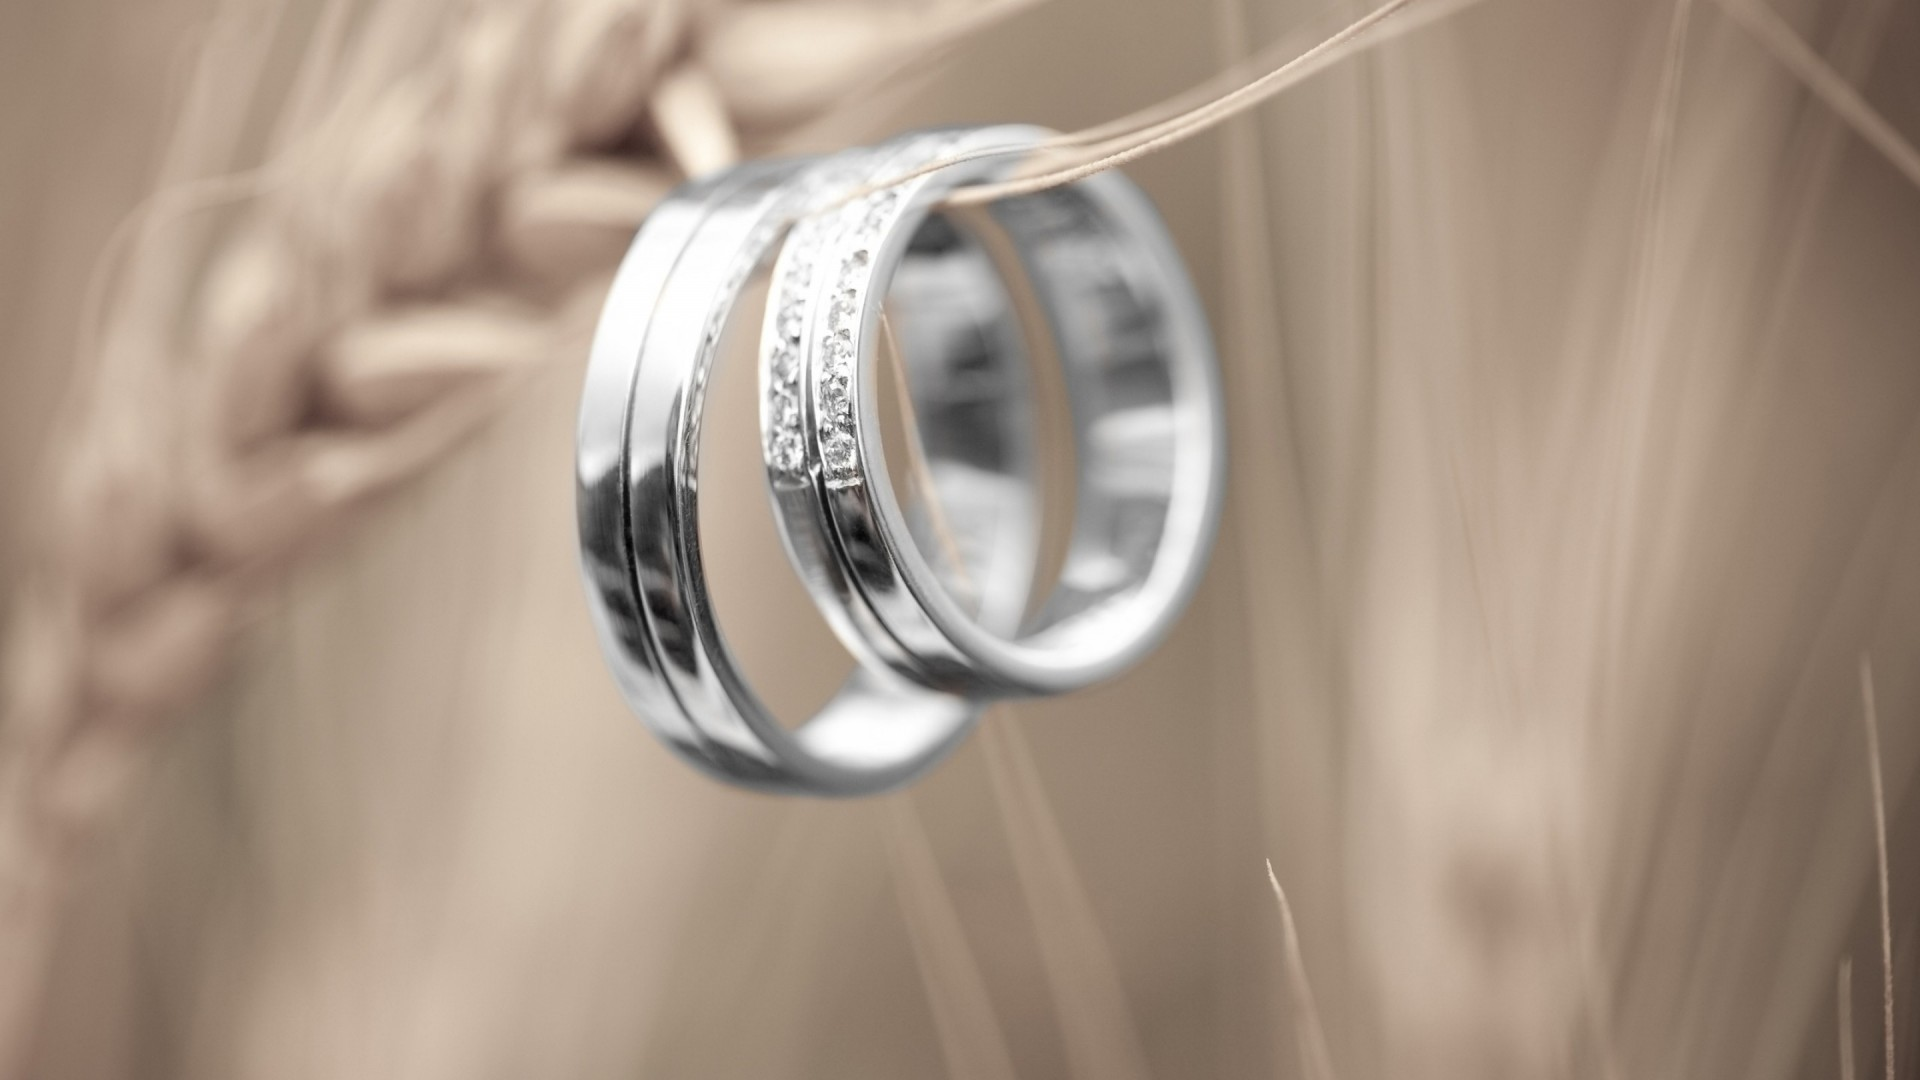 Wedding Ring Wallpapers 2 Hd Wallpapers Hd Images Hd Pictures